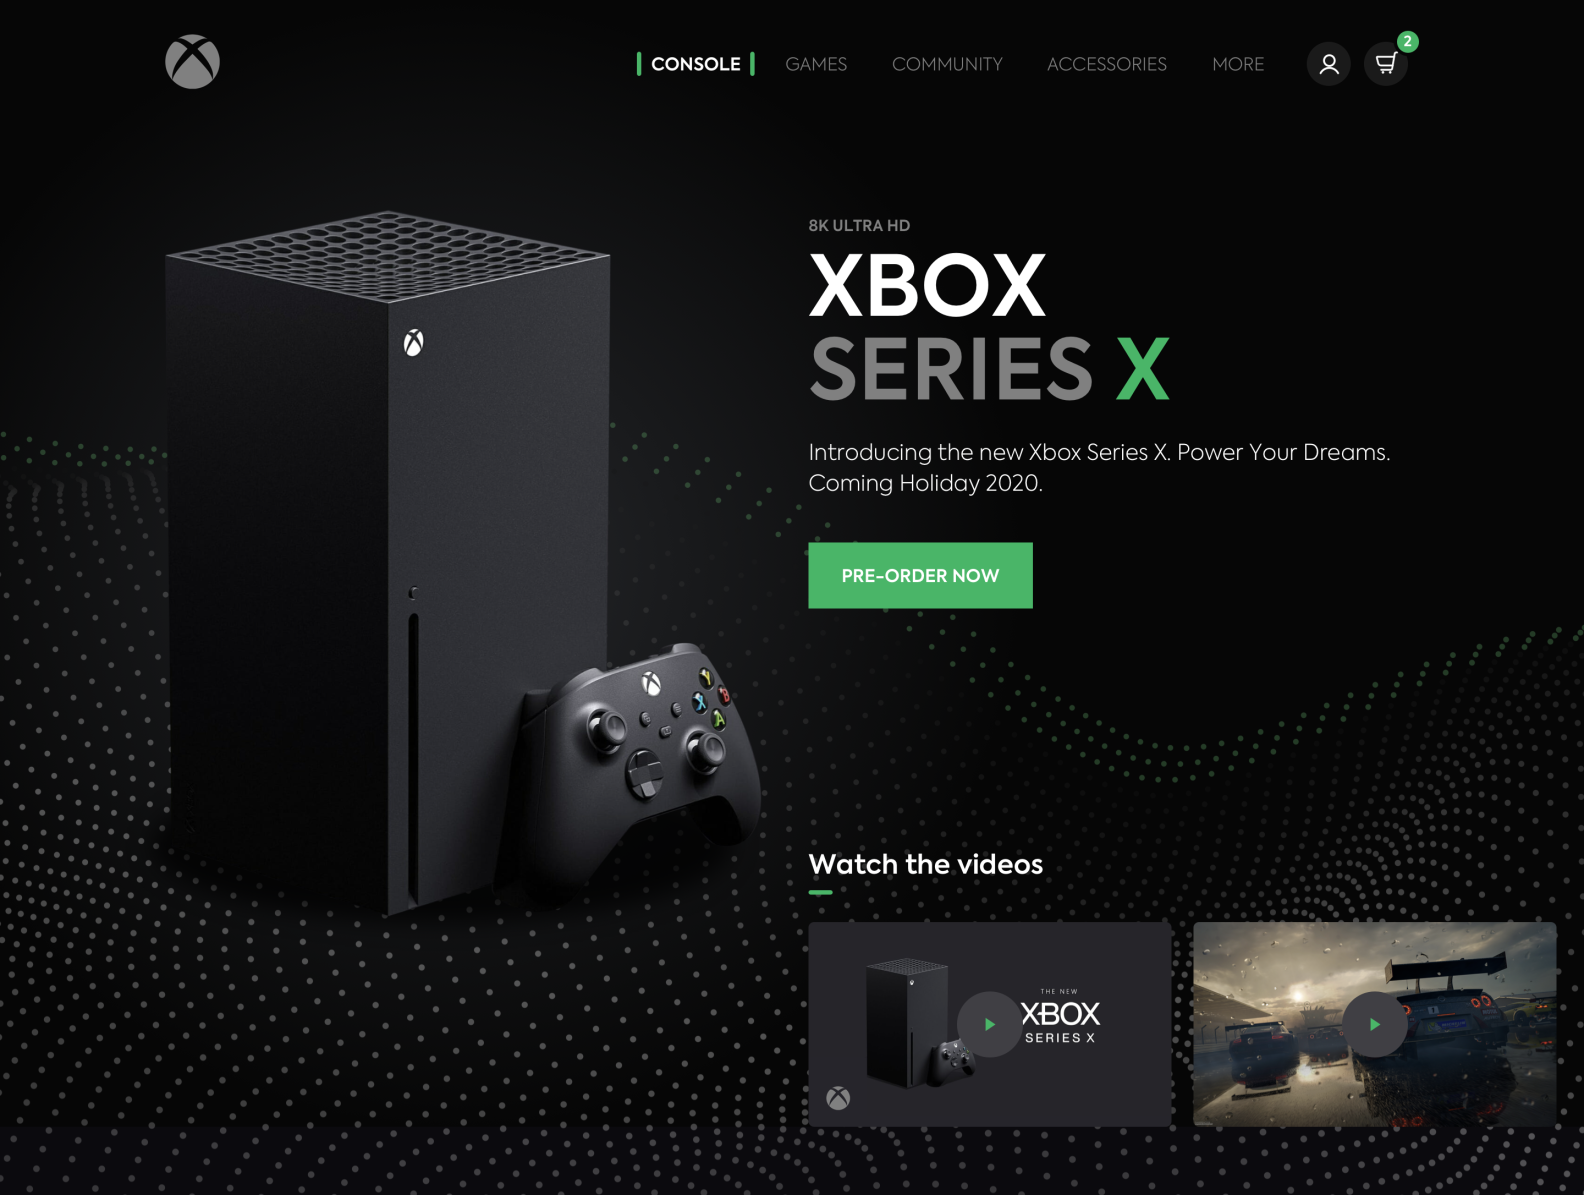 Xbox Series X In 2020 Xbox Black Friday Stores Black Xbox